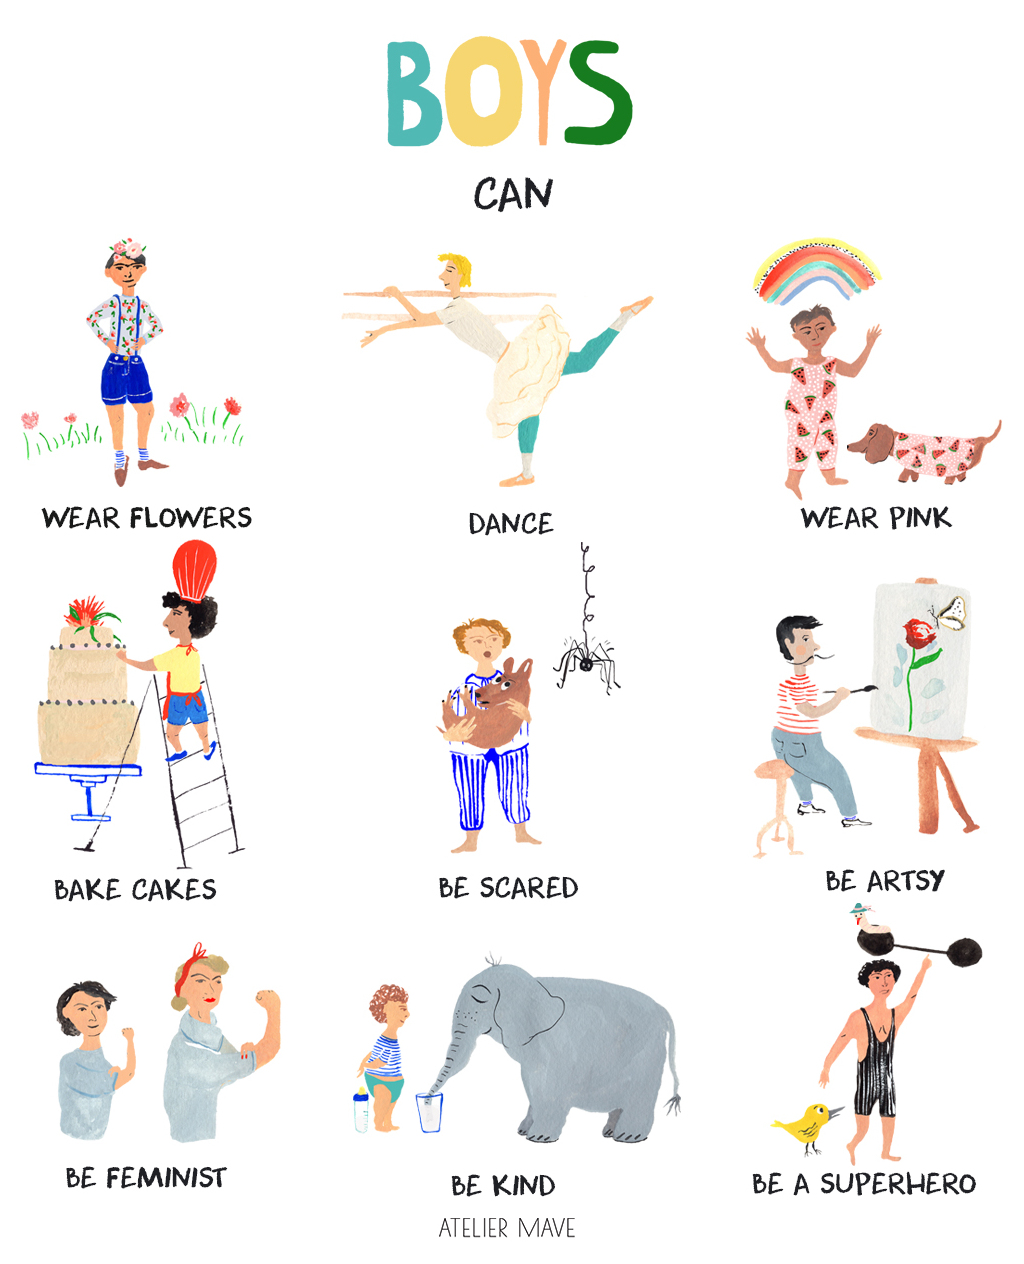 boys can illustration empowering boys(1)